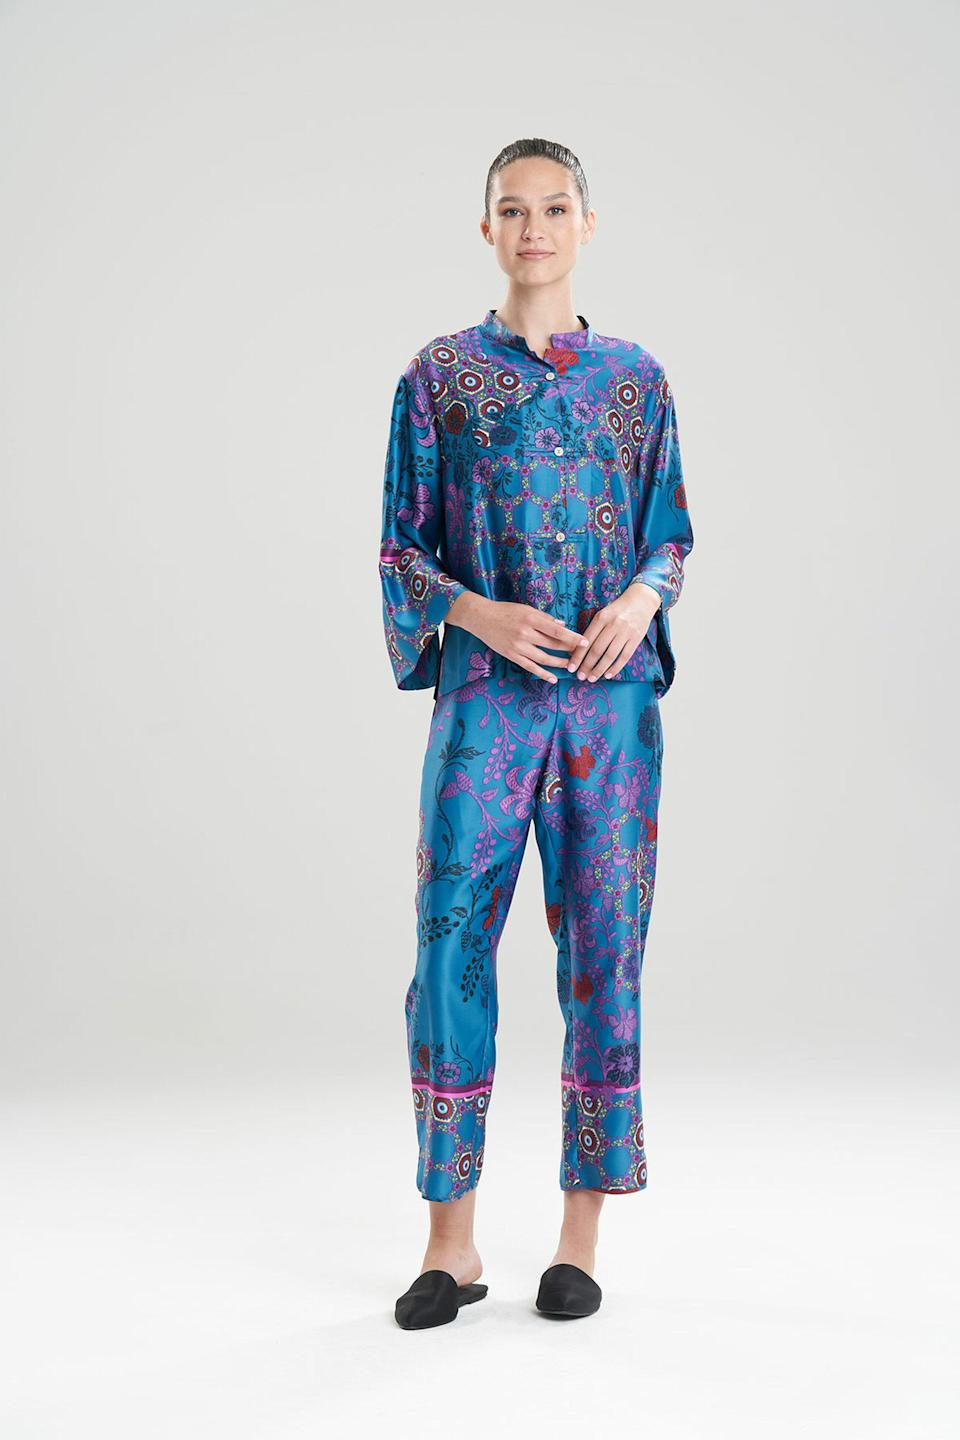 """<p><strong>natori</strong></p><p>natori.com</p><p><strong>$180.00</strong></p><p><a href=""""https://go.redirectingat.com?id=74968X1596630&url=https%3A%2F%2Fwww.natori.com%2Fnew%2Fsamarkand-mandarin-pj%2F&sref=https%3A%2F%2Fwww.womenshealthmag.com%2Flife%2Fg37581188%2Fpajamas-for-women%2F"""" rel=""""nofollow noopener"""" target=""""_blank"""" data-ylk=""""slk:Shop Now"""" class=""""link rapid-noclick-resp"""">Shop Now</a></p><p>Richly-printed pajamas like these made in the Philippines need a place in every fashionista's closet. They're begging for a spot on your Insta grid.<br></p>"""